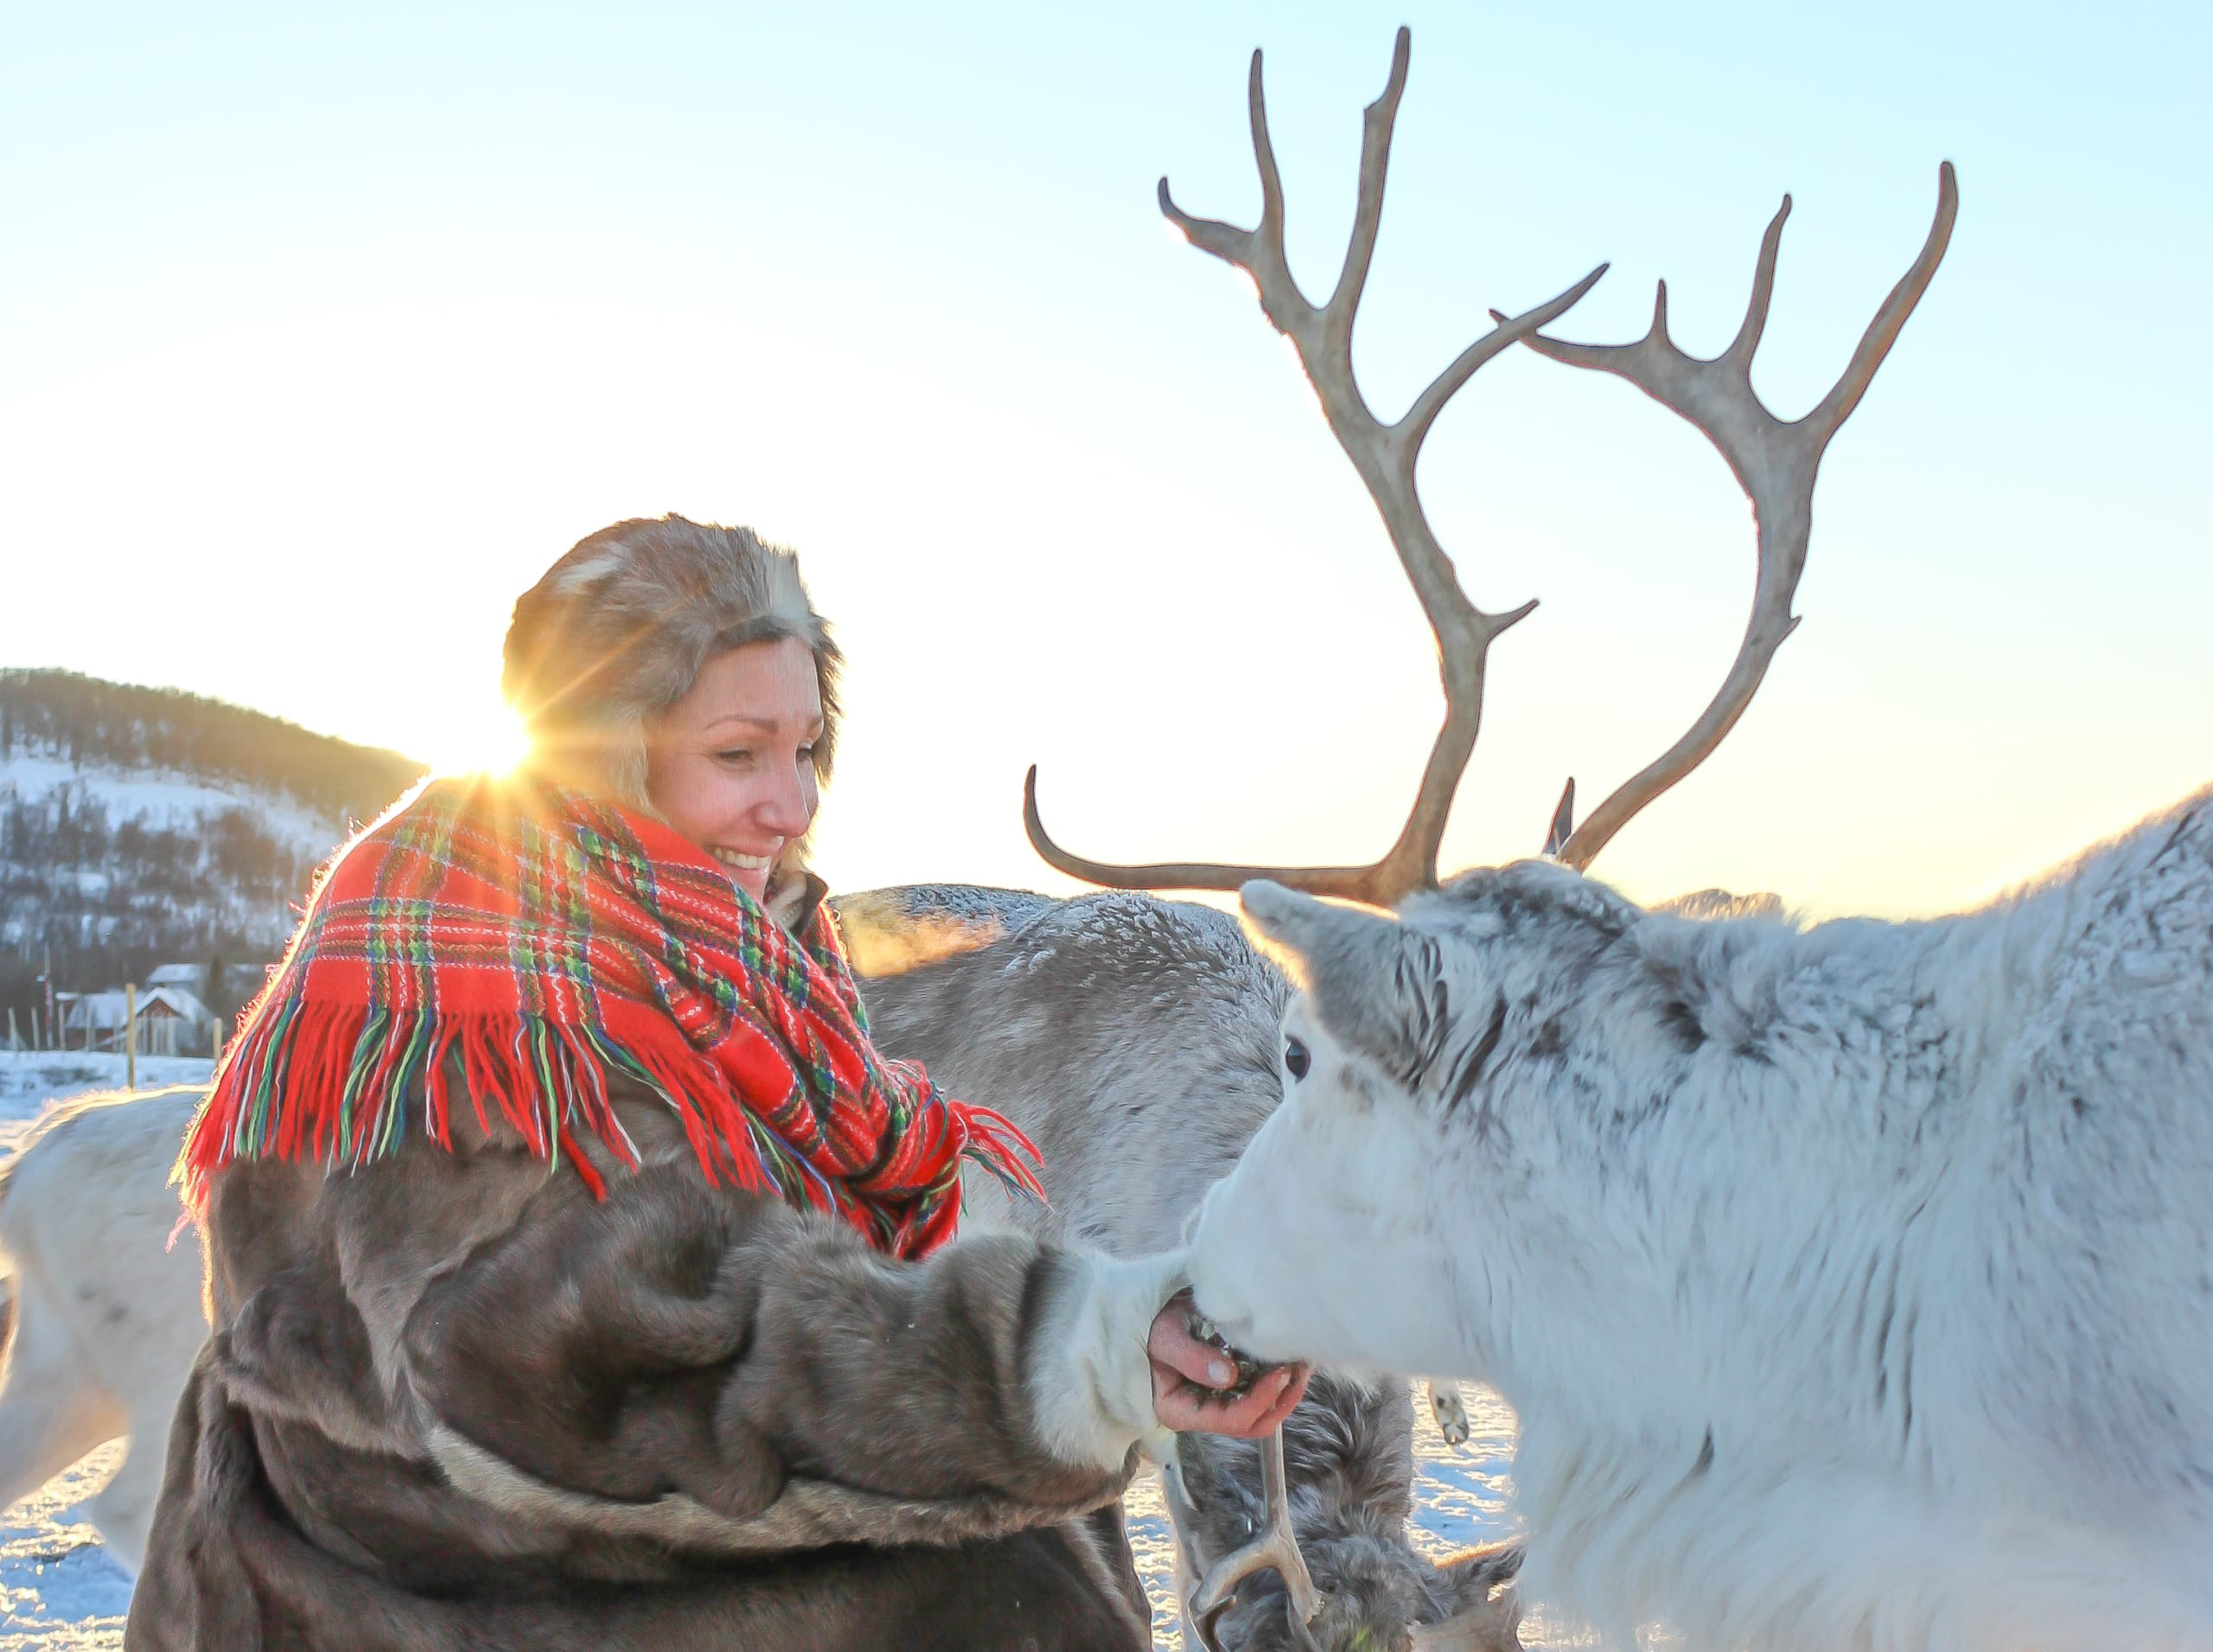 Sami woman feeding reindeer in Tromsø